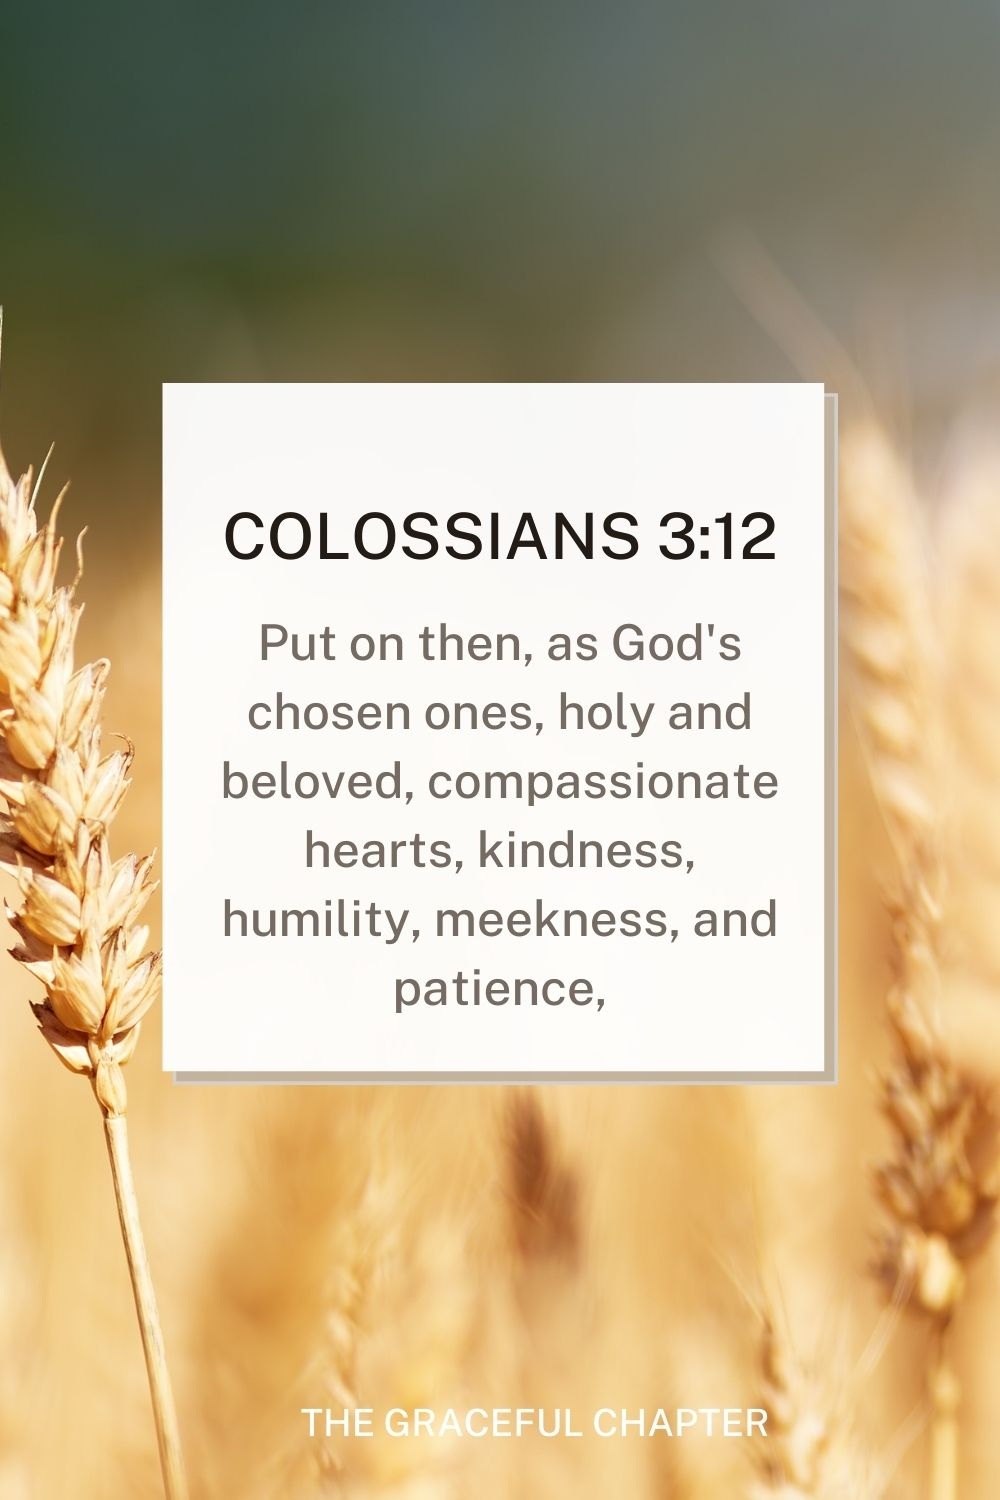 Put on then, as God's chosen ones, holy and beloved, compassionate hearts, kindness, humility, meekness, and patience, Colossians 3:12